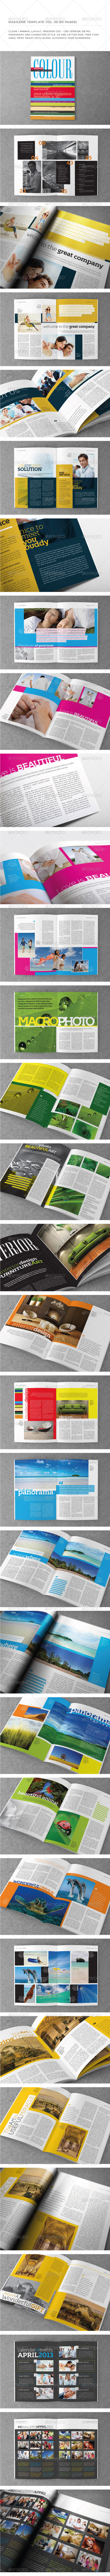 A4/Letter 50 Pages mgz (Vol. 9) - Magazines Print Templates